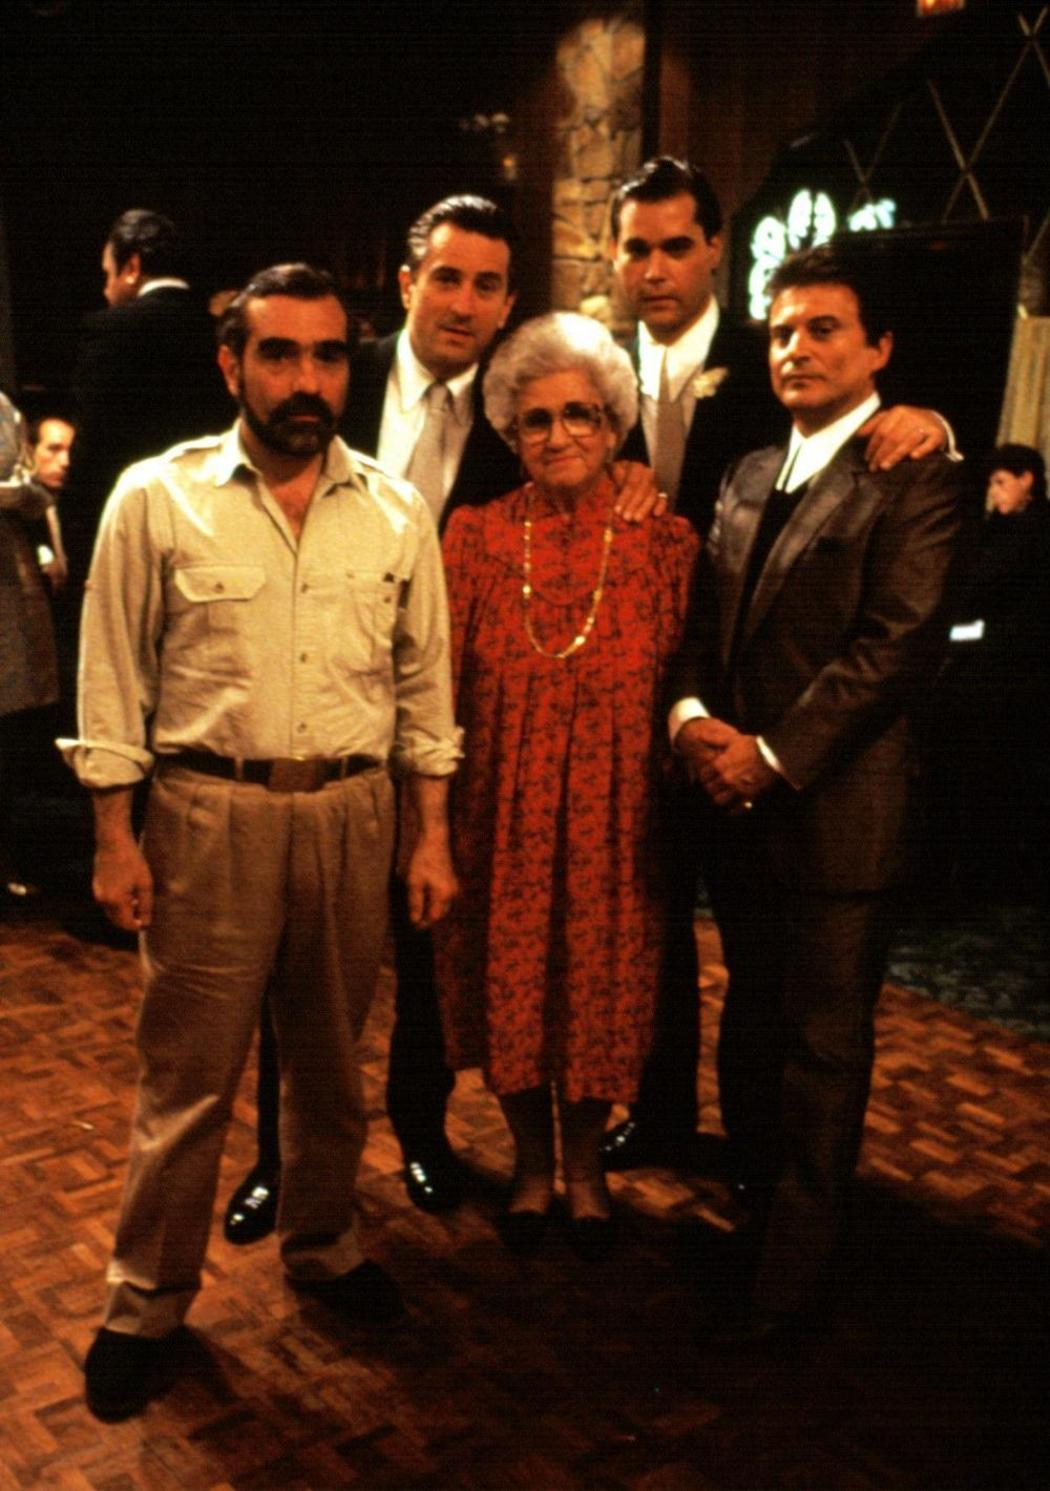 'Goodfellas' at 30: Martin Scorsese's Anthropological Goodlife Through a Lens